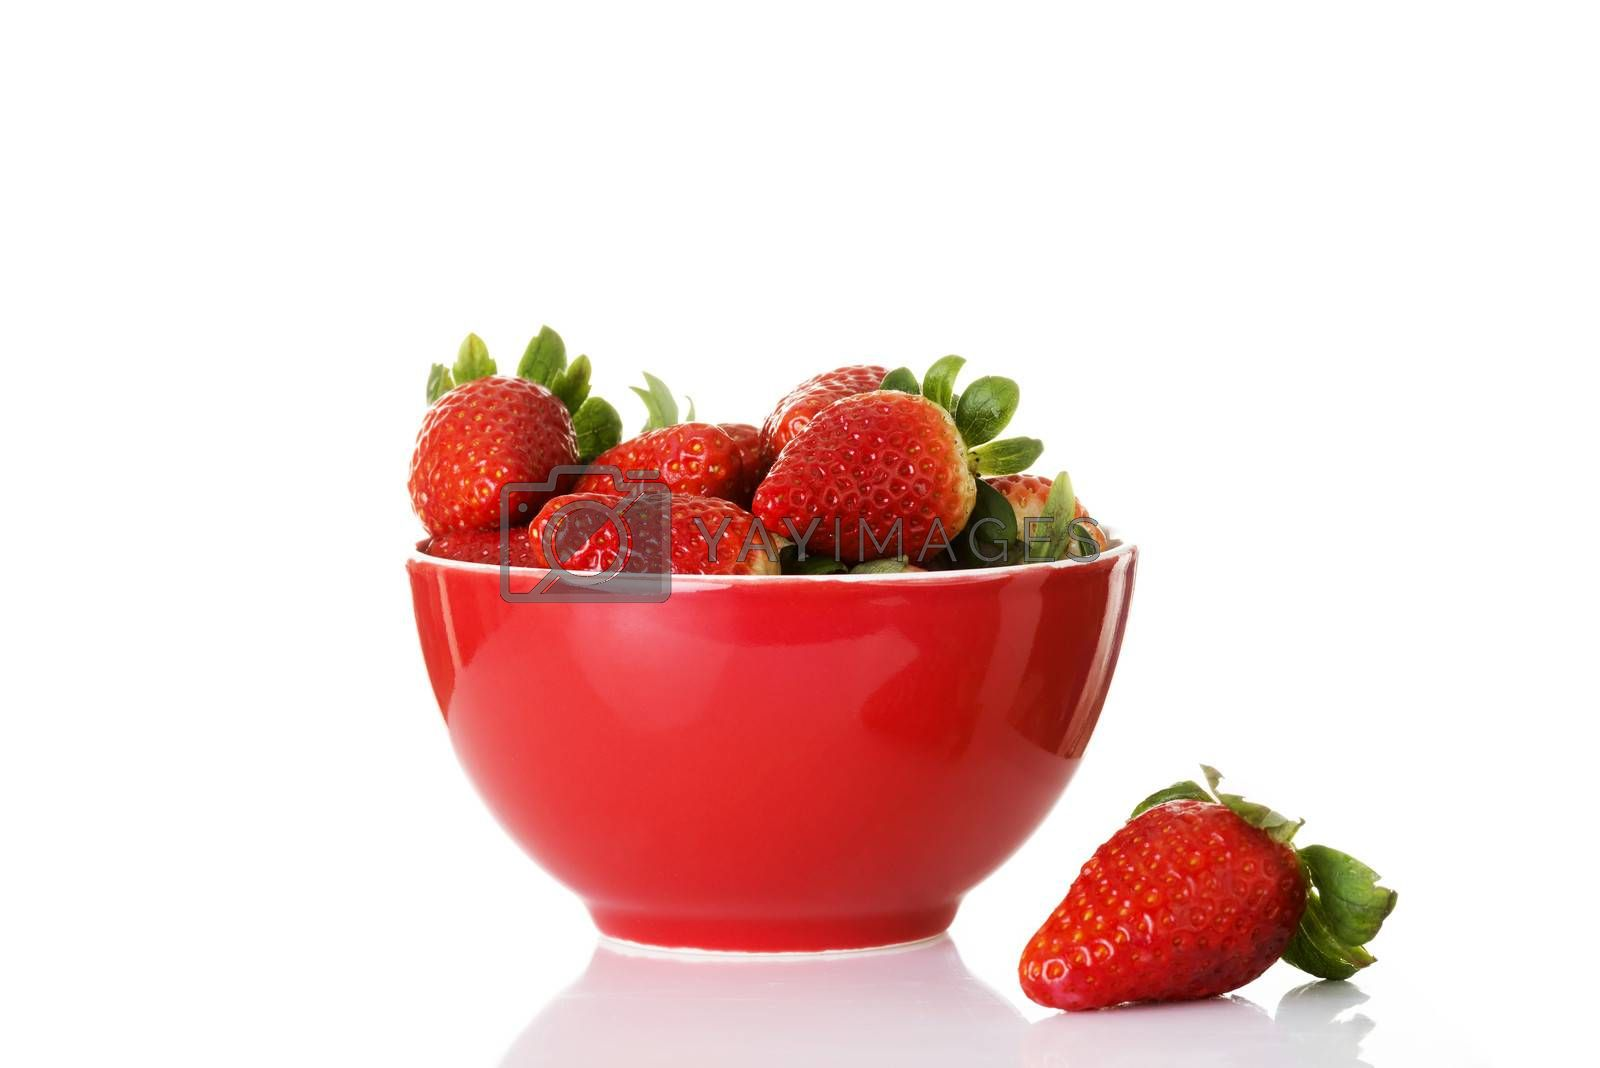 Royalty free image of Fresh red strawberries in a bowl. by BDS